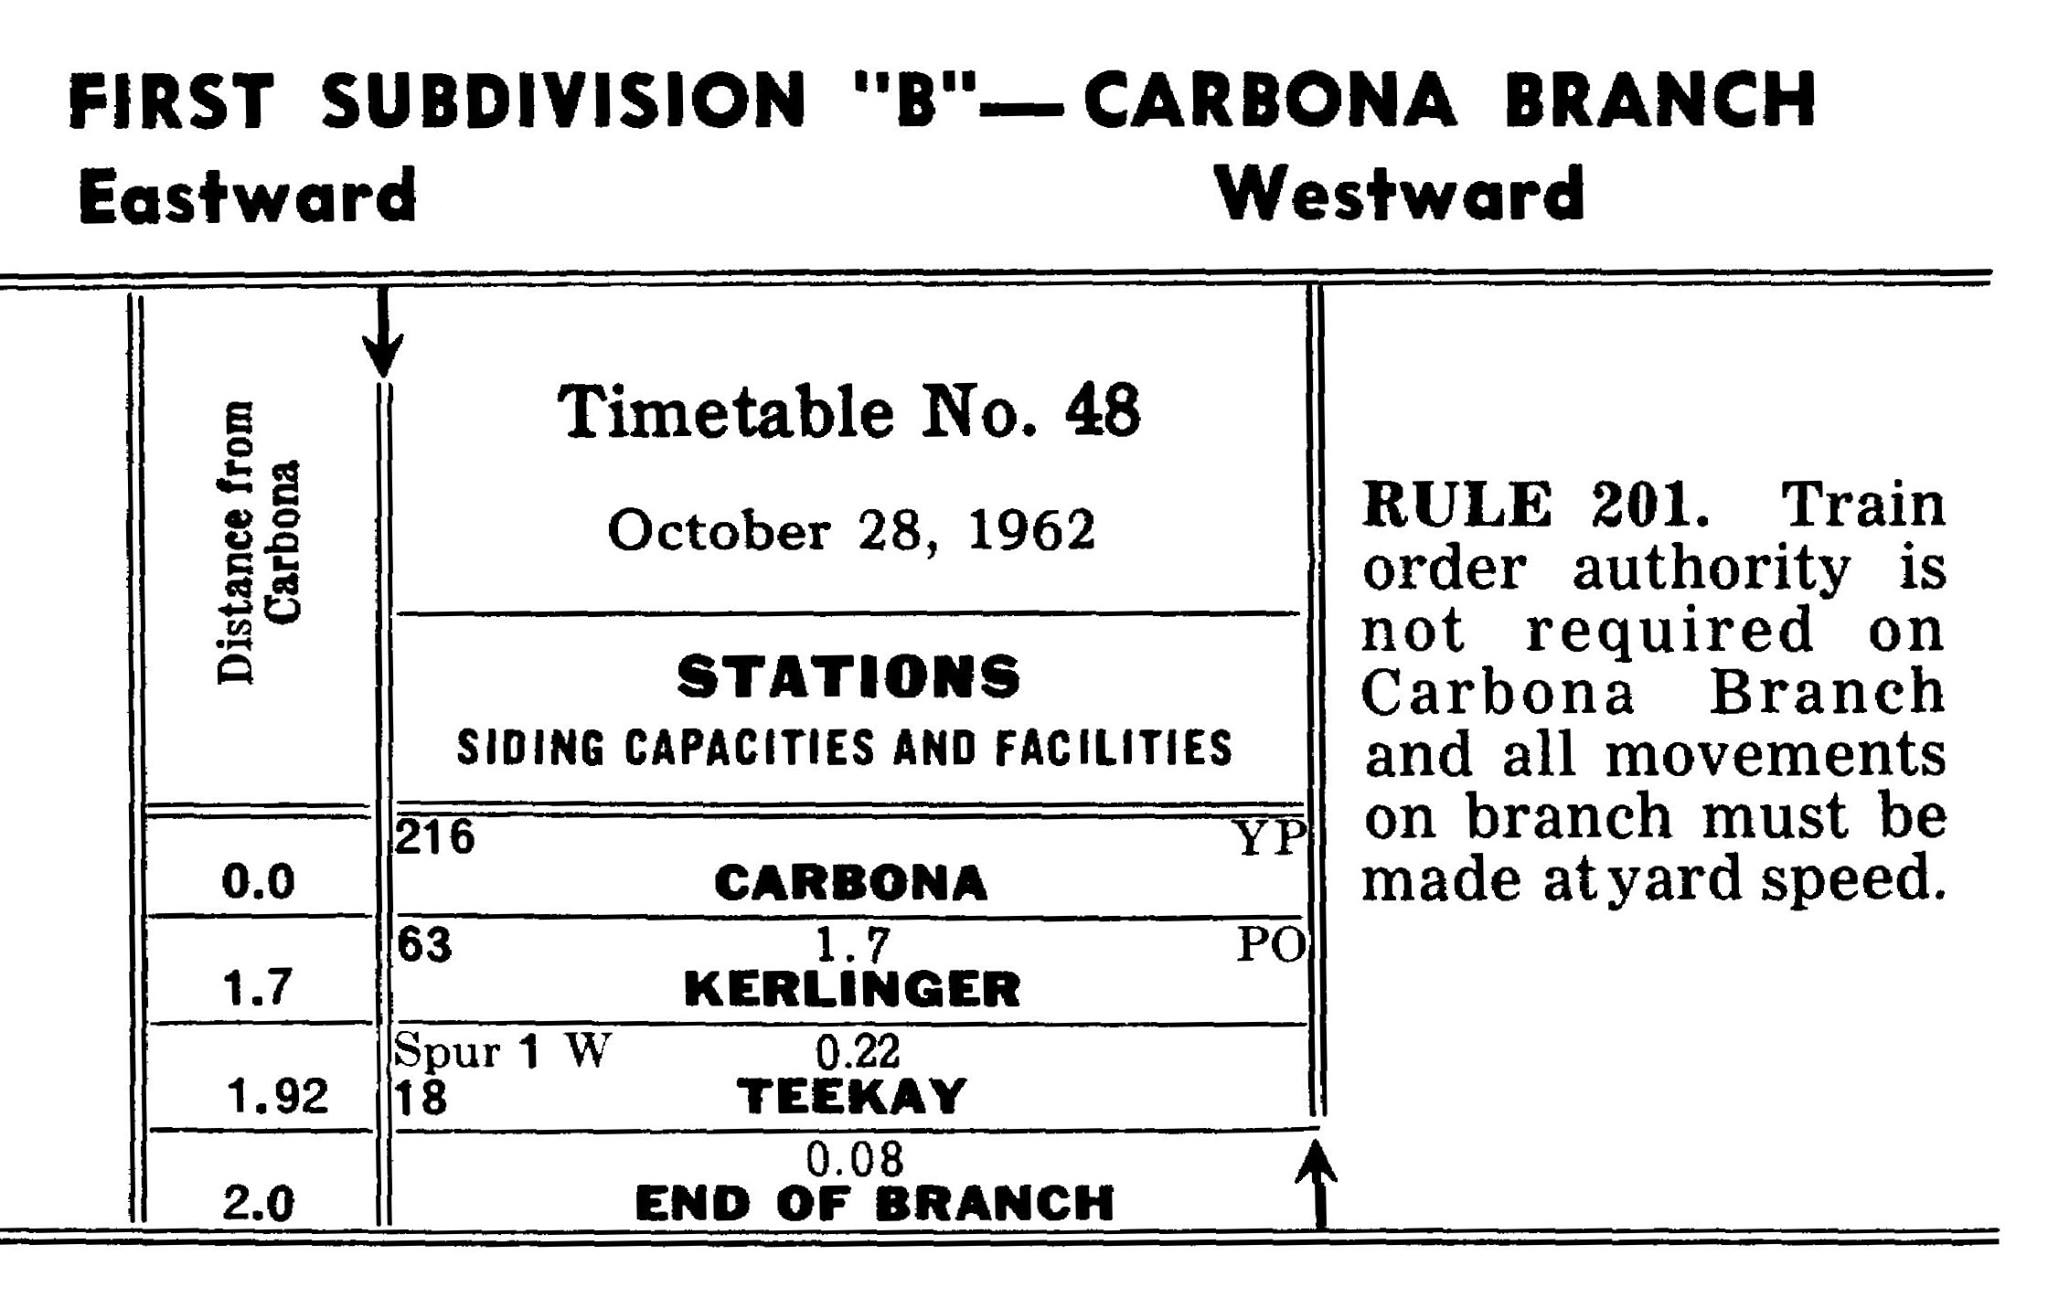 Western Pacific Carbona Timetable (Image)